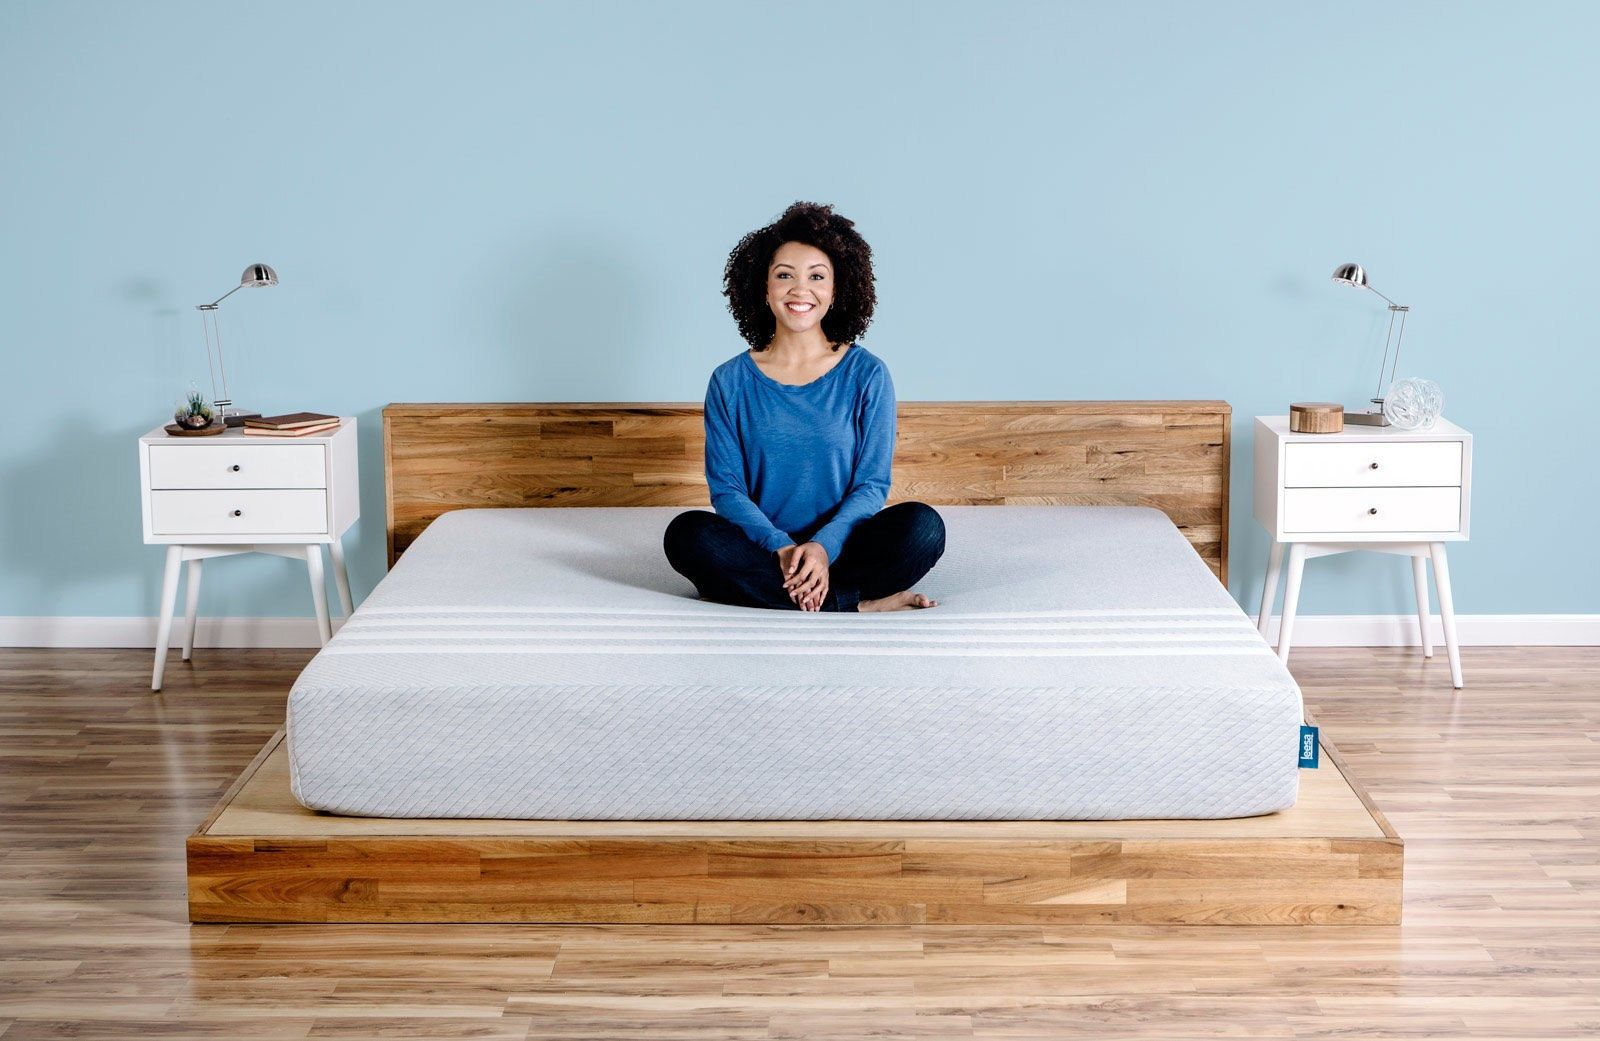 10 Affordable Organic Natural Mattresses For 2020 Leesa Mattress Best Mattress Natural Mattress